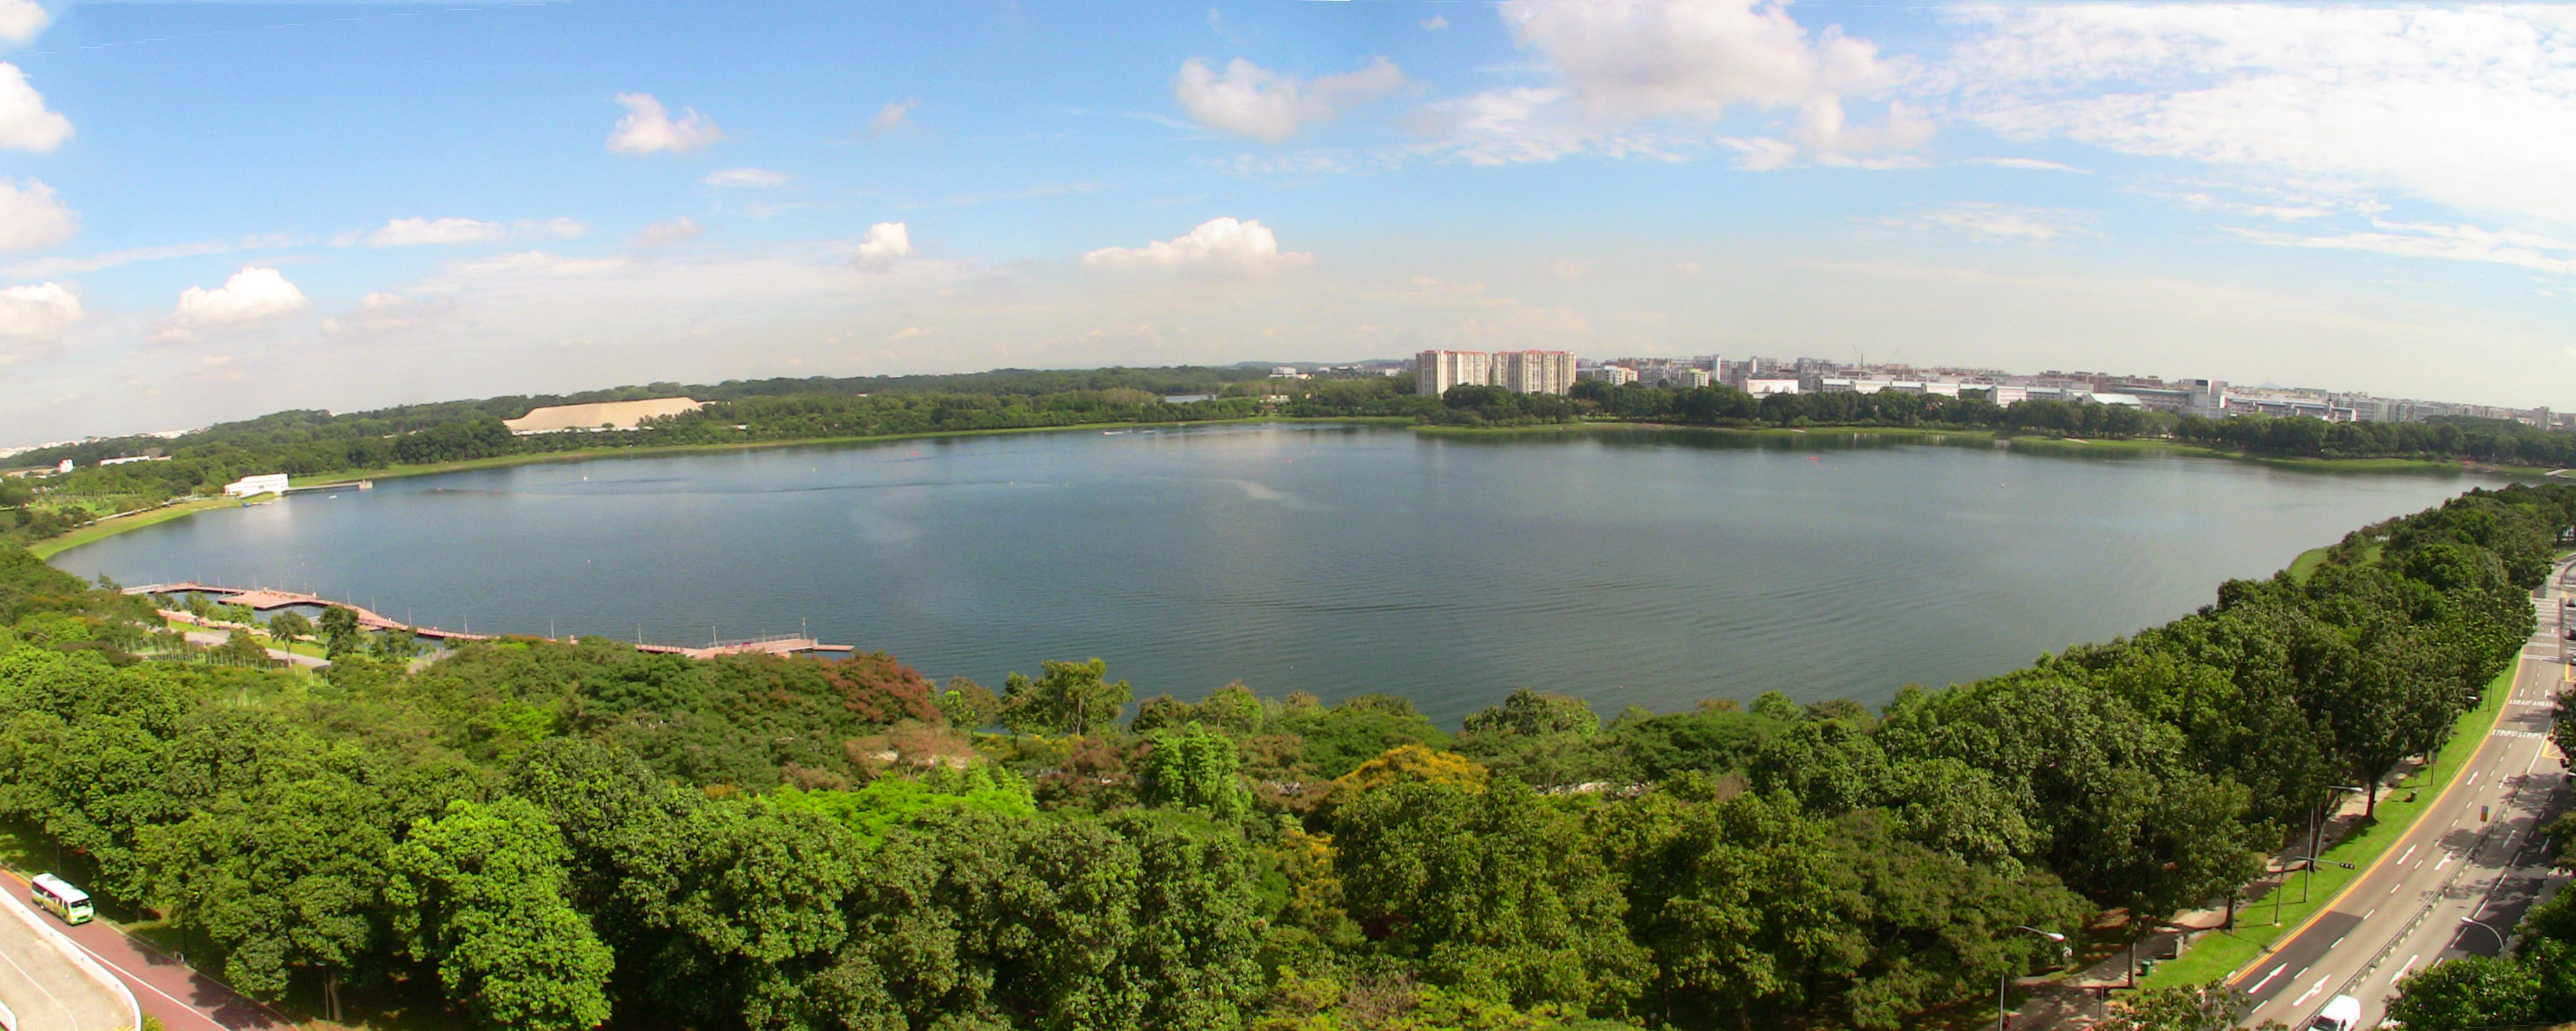 1_bedok_reservoir_panorama_2010